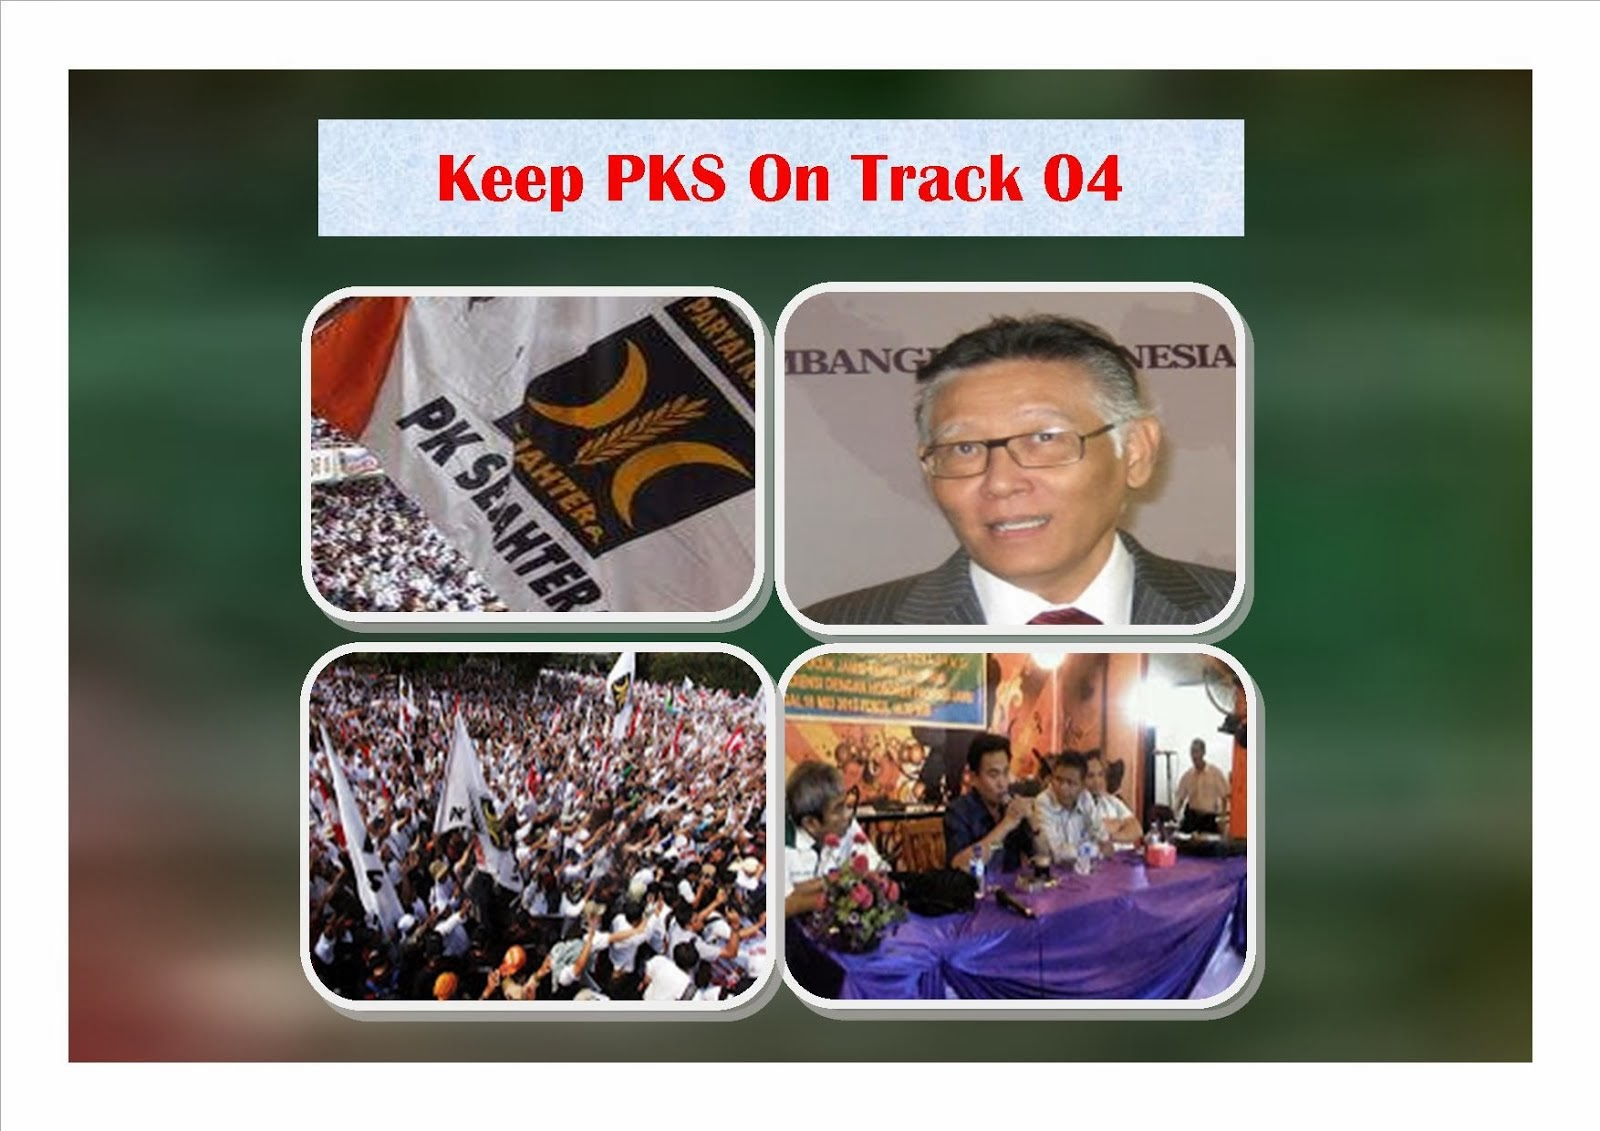 Keep PKS On Track 04